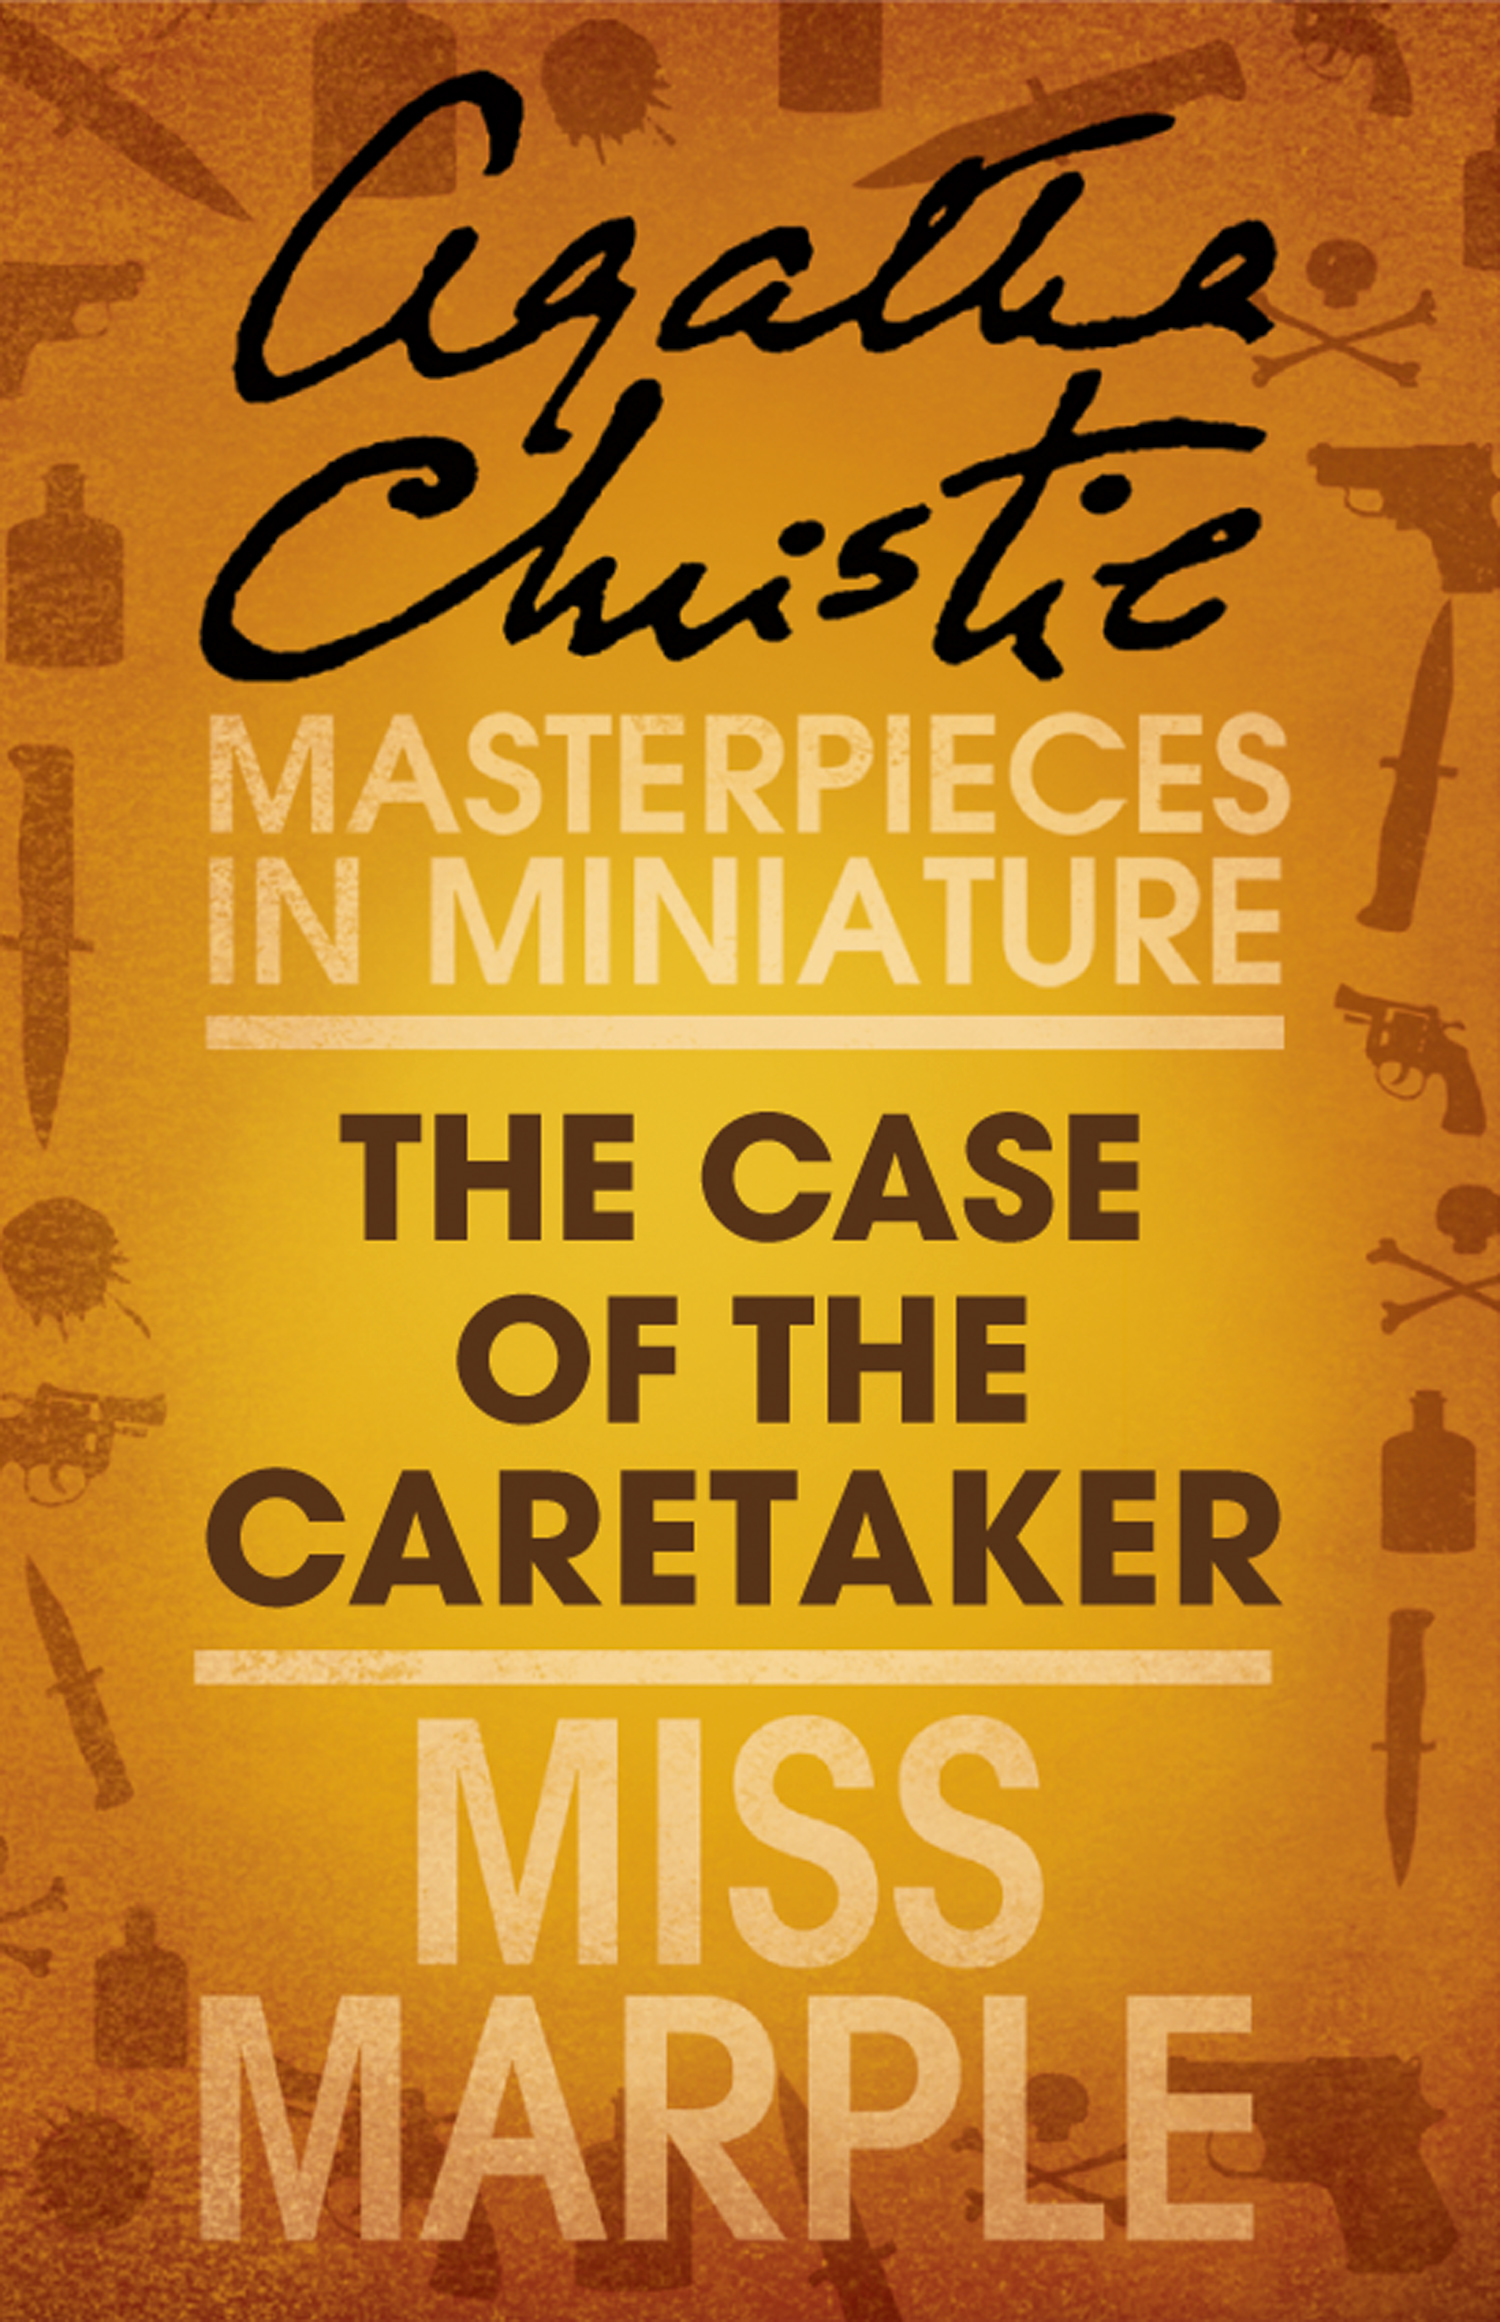 The Case of the Caretaker: A Miss Marple Short Story